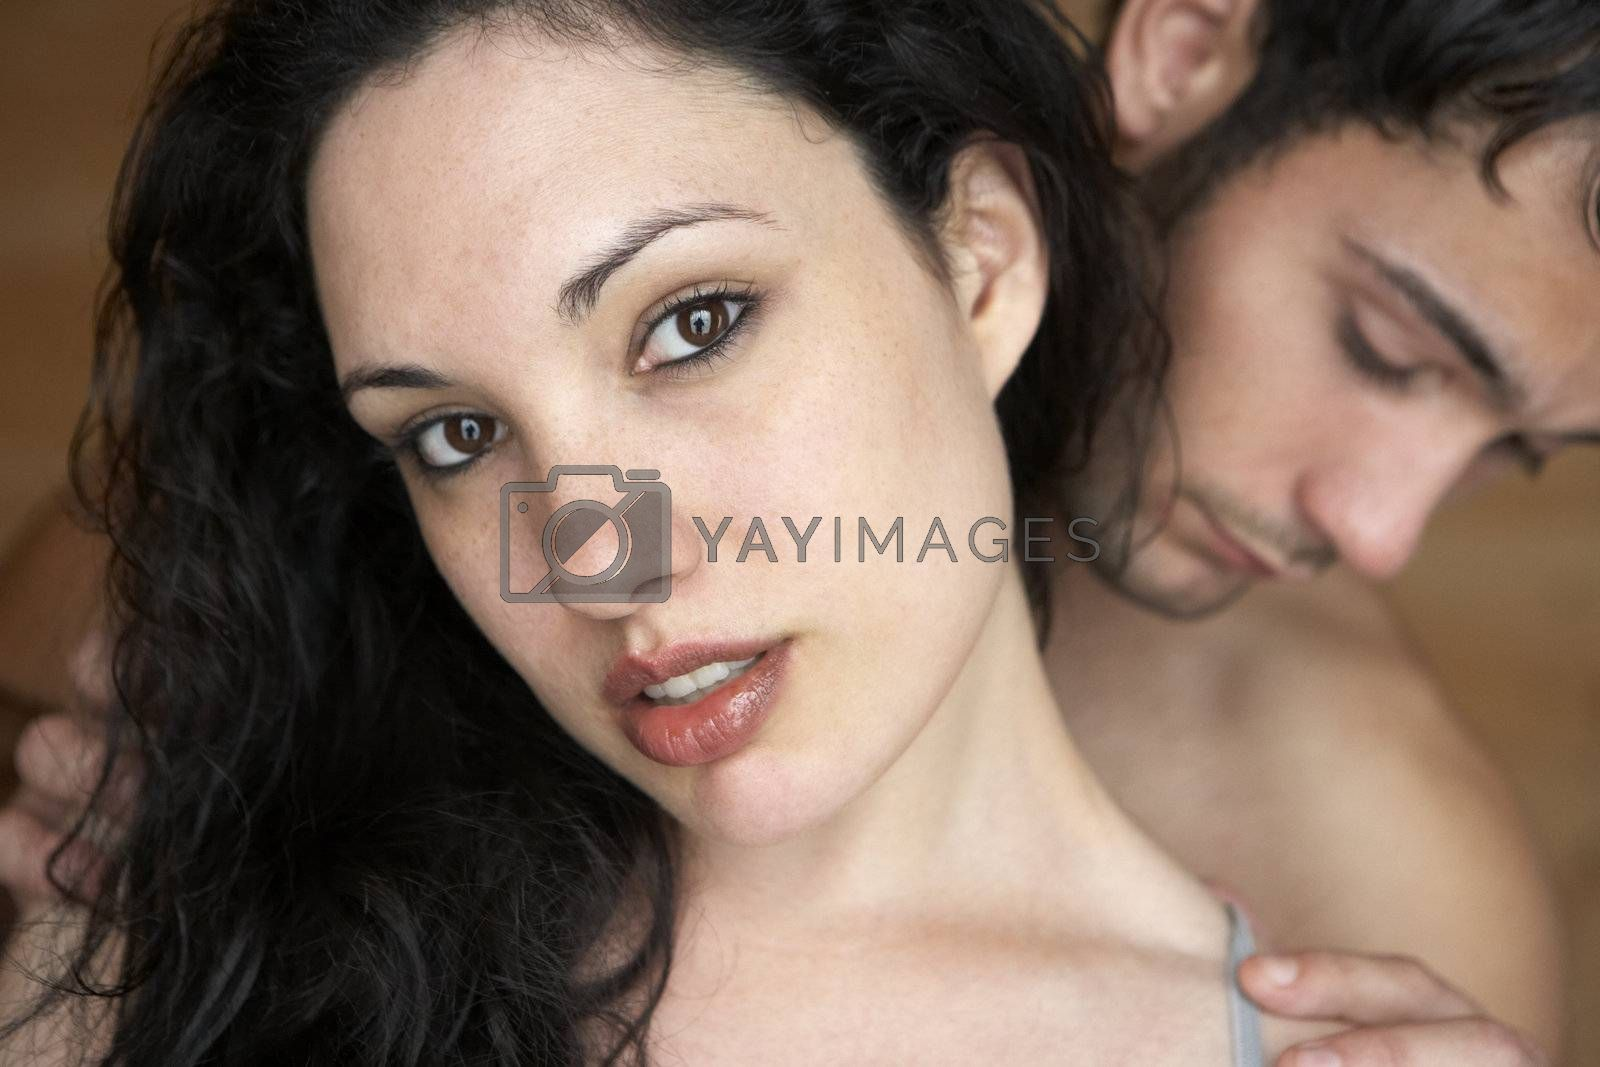 Royalty free image of Love couple by omg_images